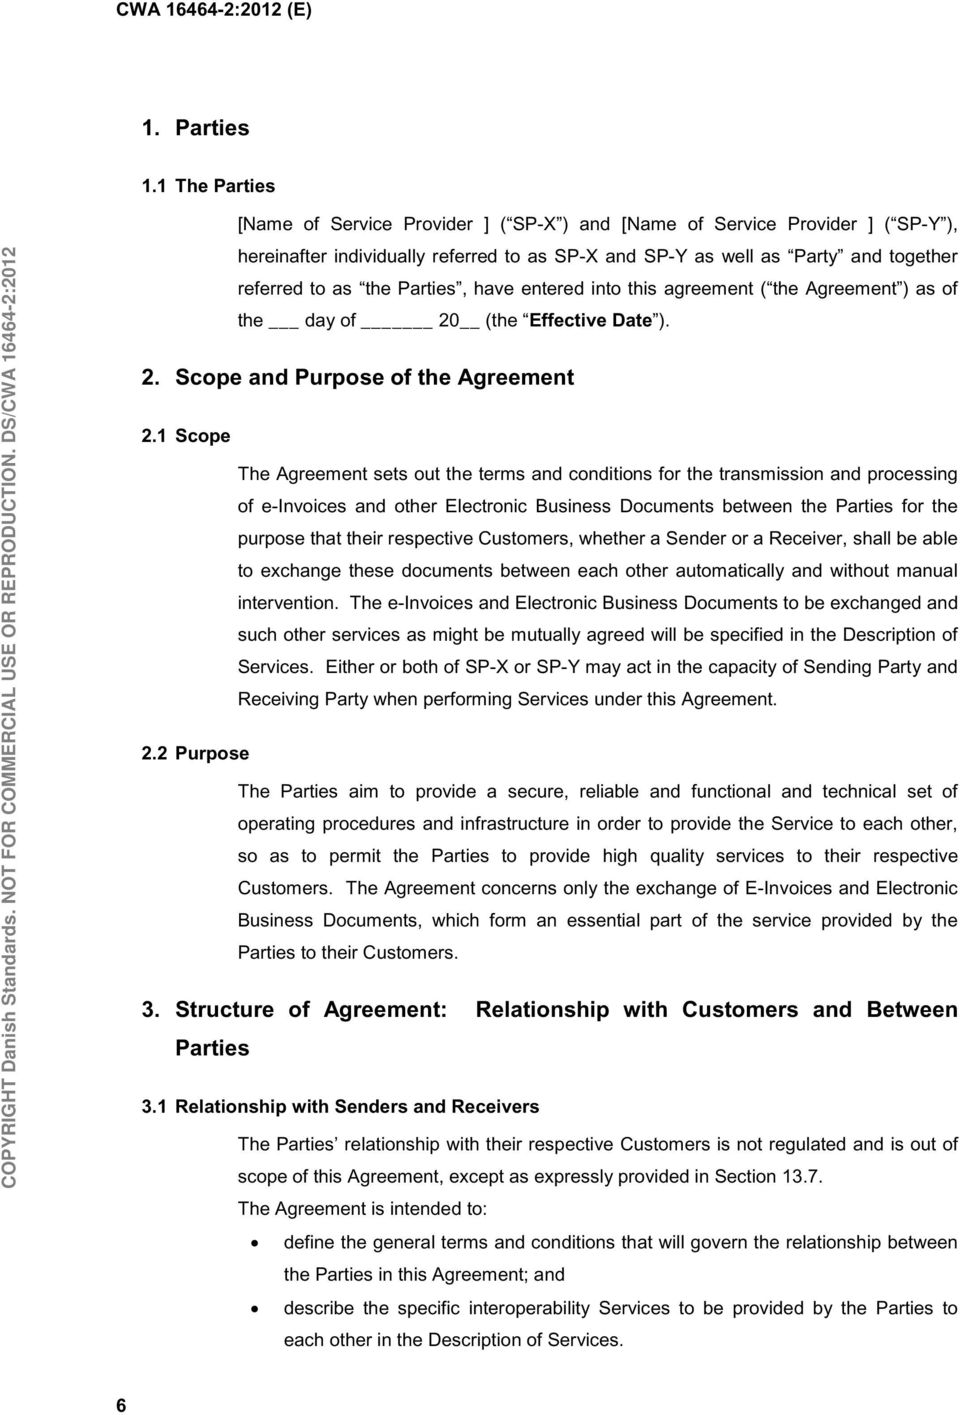 Parties, have entered into this agreement ( the Agreement ) as of the day of 20 (the Effective Date ). 2. Scope and Purpose of the Agreement 2.